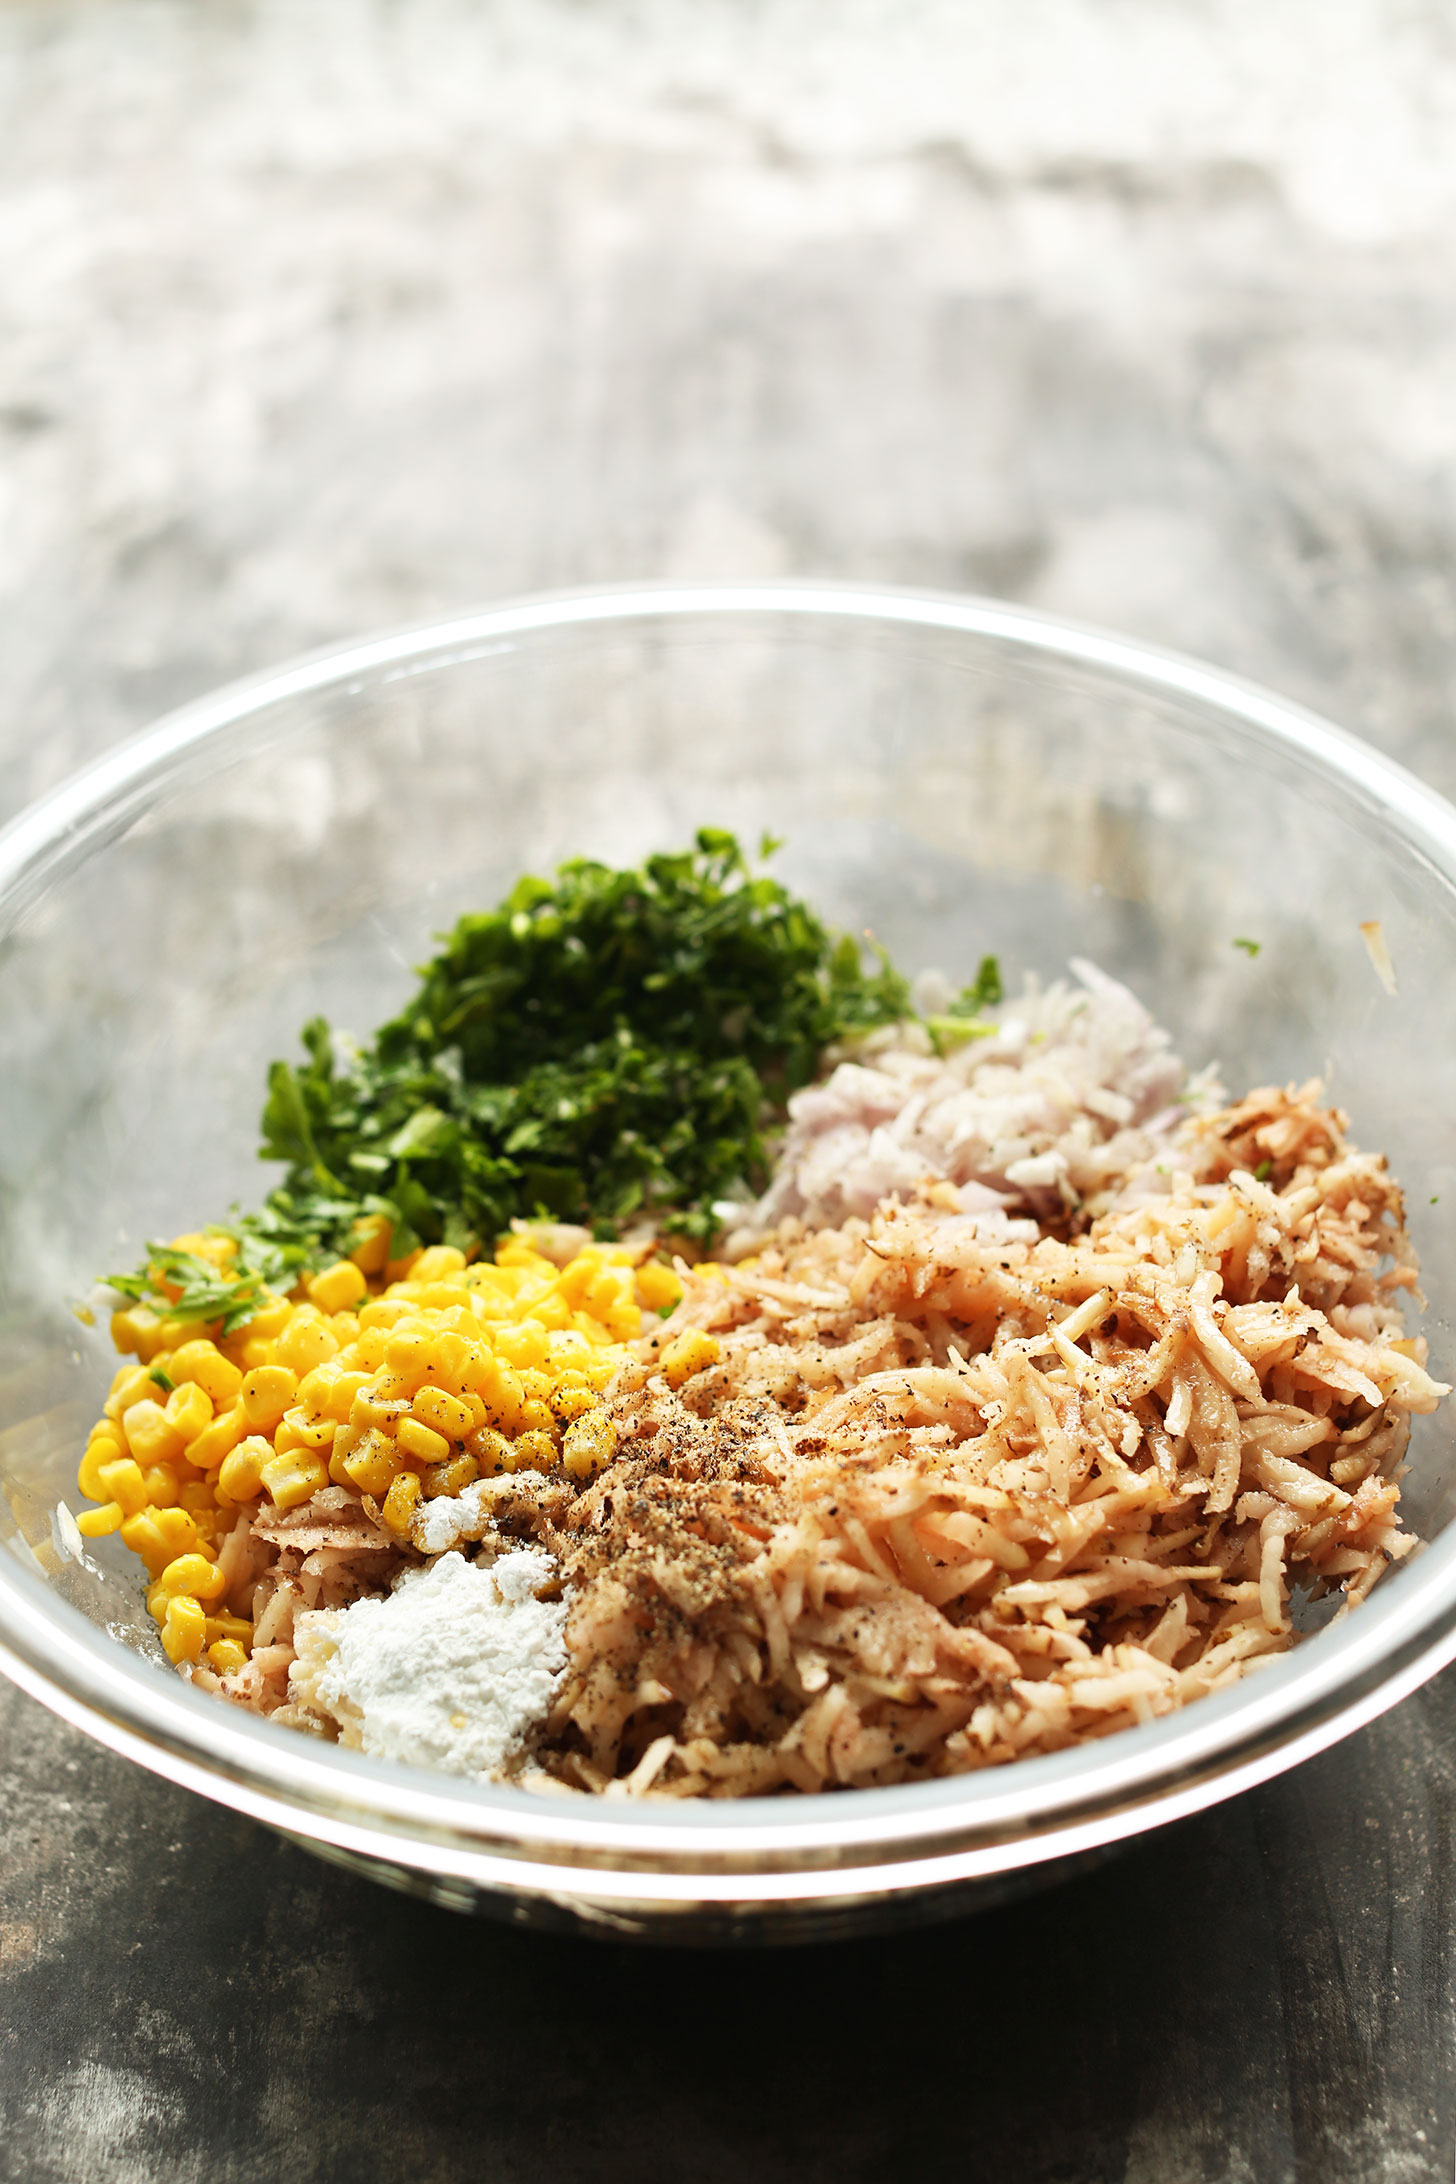 Mixing bowl with ingredients for making Crispy Hash Browns with corn, parsley, and shallot